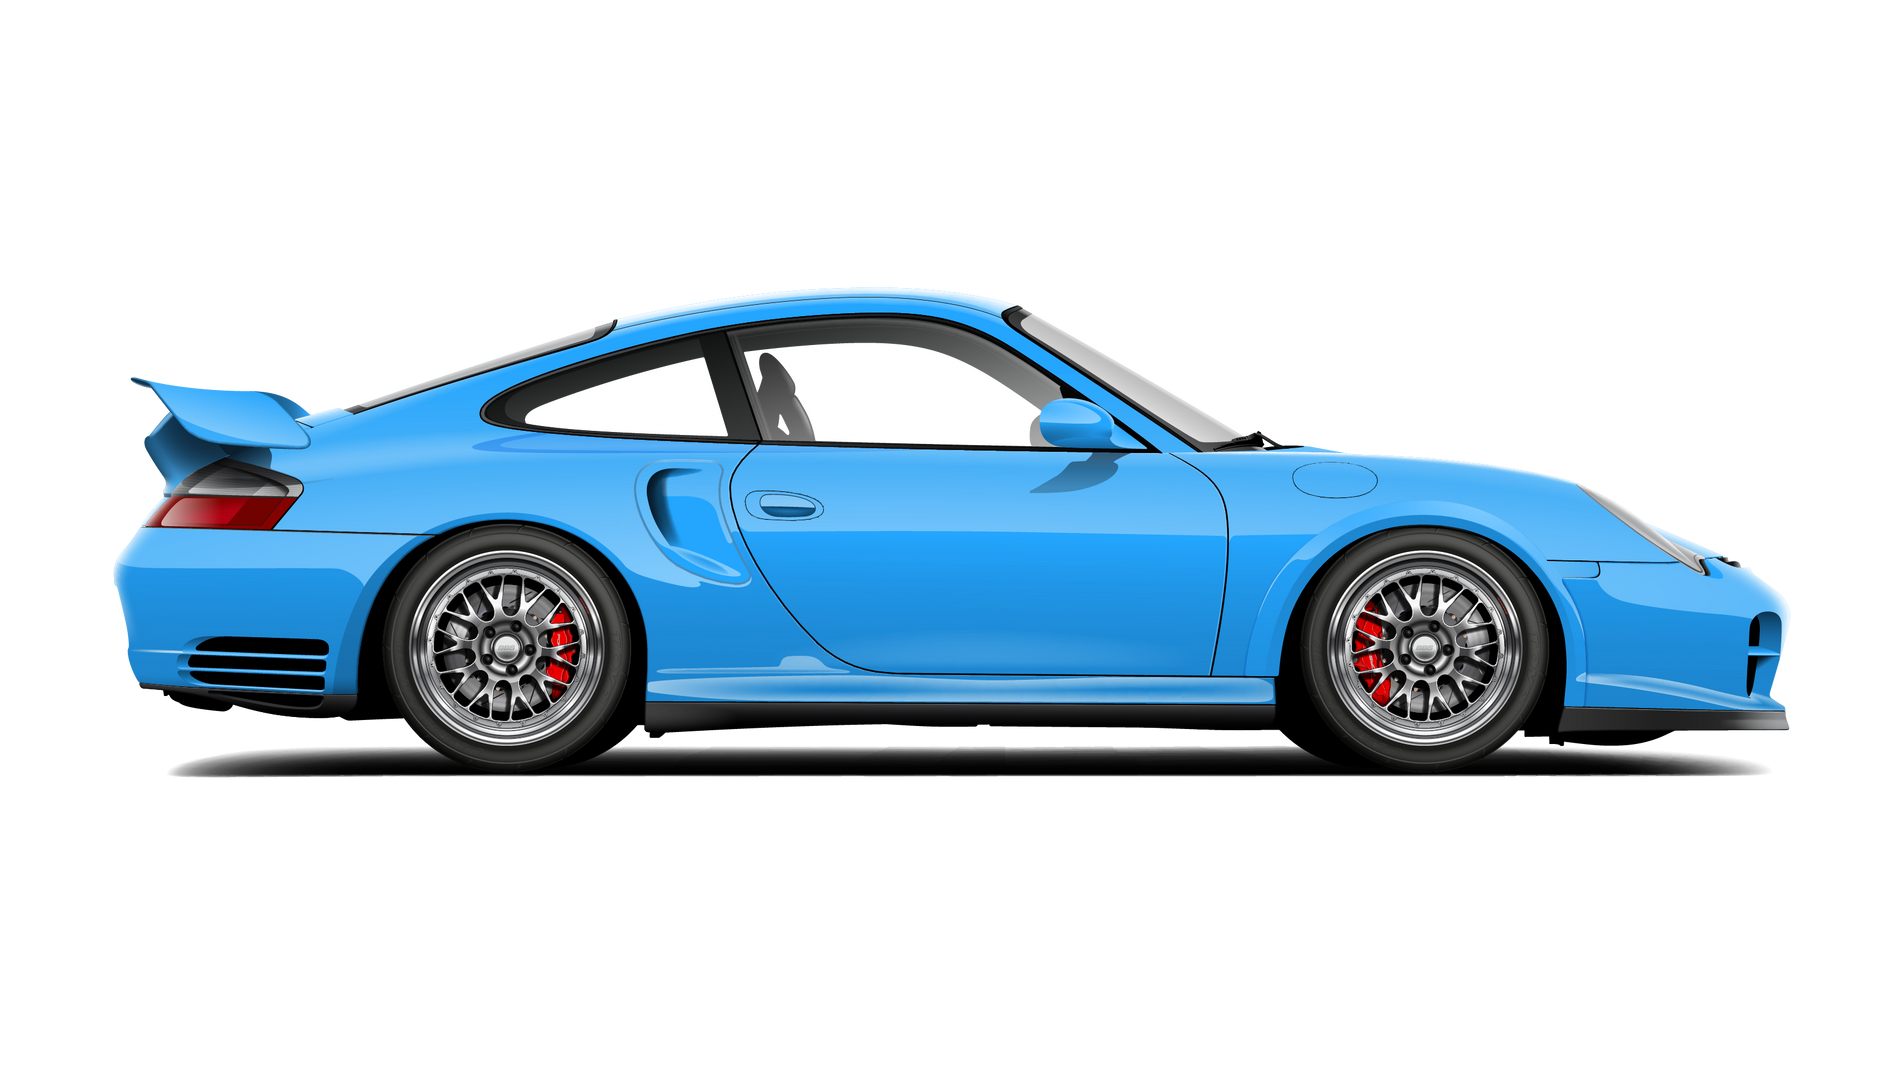 showcase_996gt2-01.png